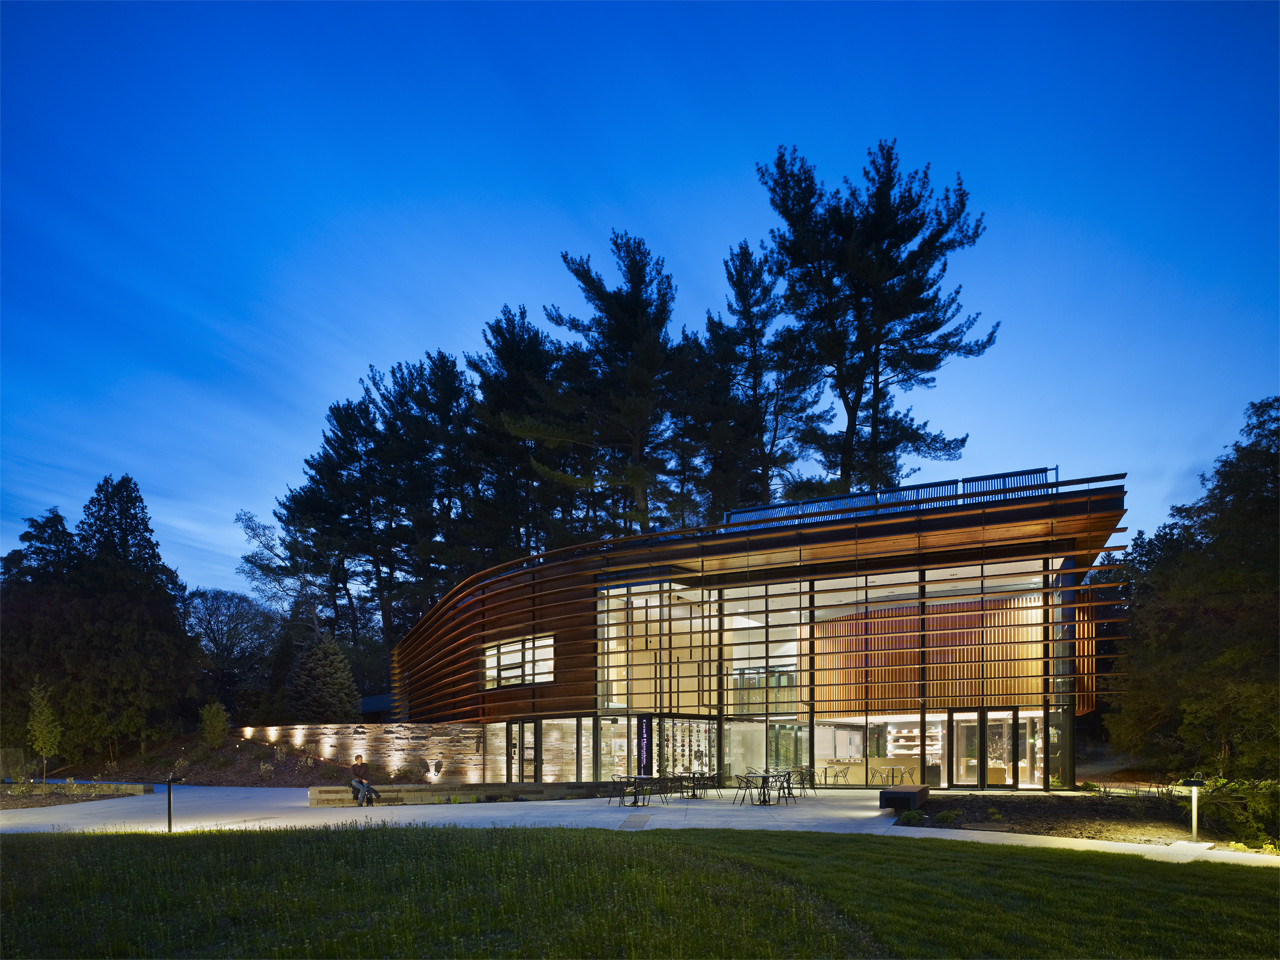 Cornell Plantations Welcome Center / Baird Sampson Neuert Architects, © Tom Arban